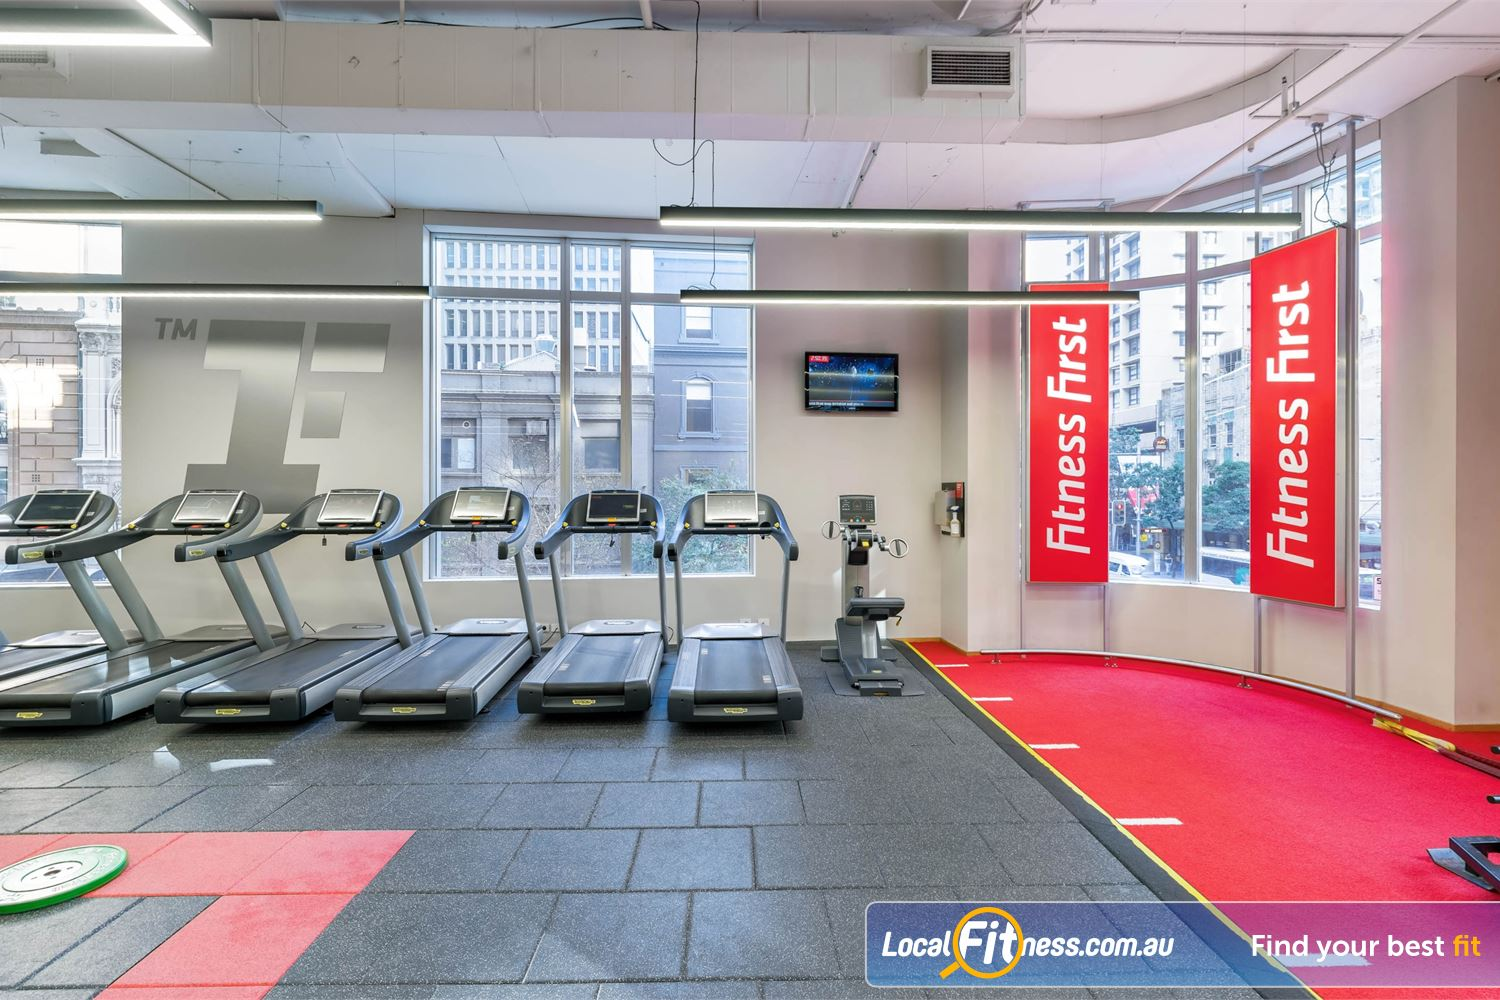 Fitness First Platinum Park St Sydney Cardio options includes state of the art cardio machines and indoor sled track.